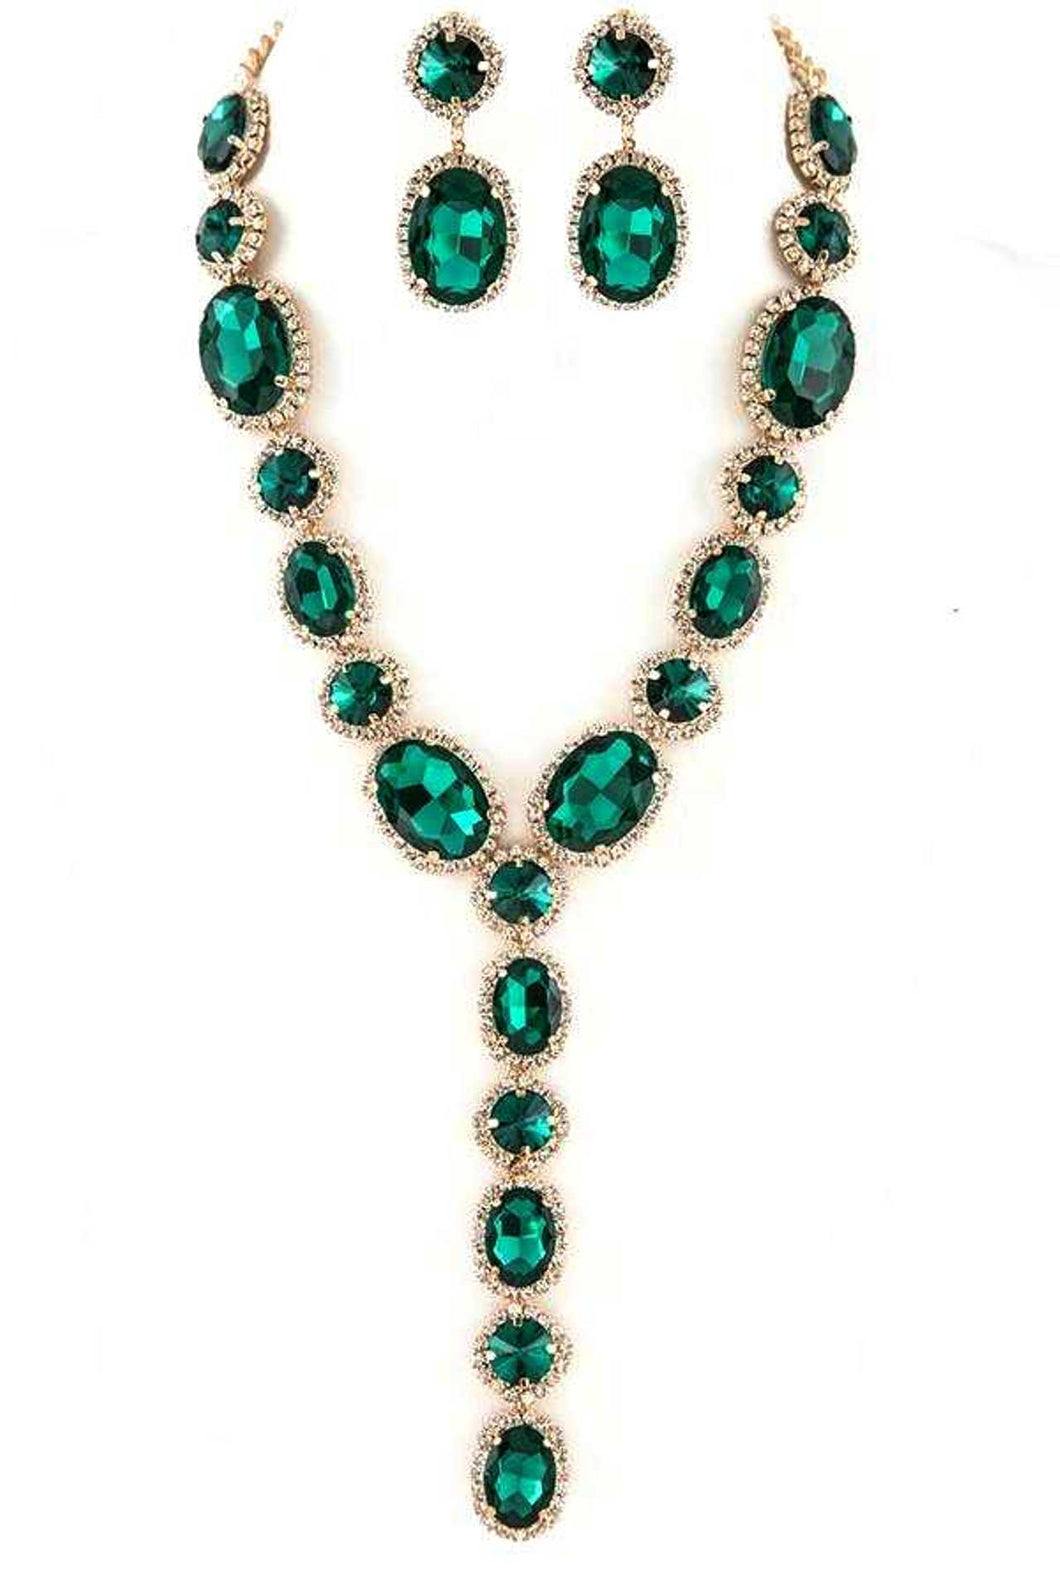 Emerald Green and Crystal  Statement Necklace and Earrings Set